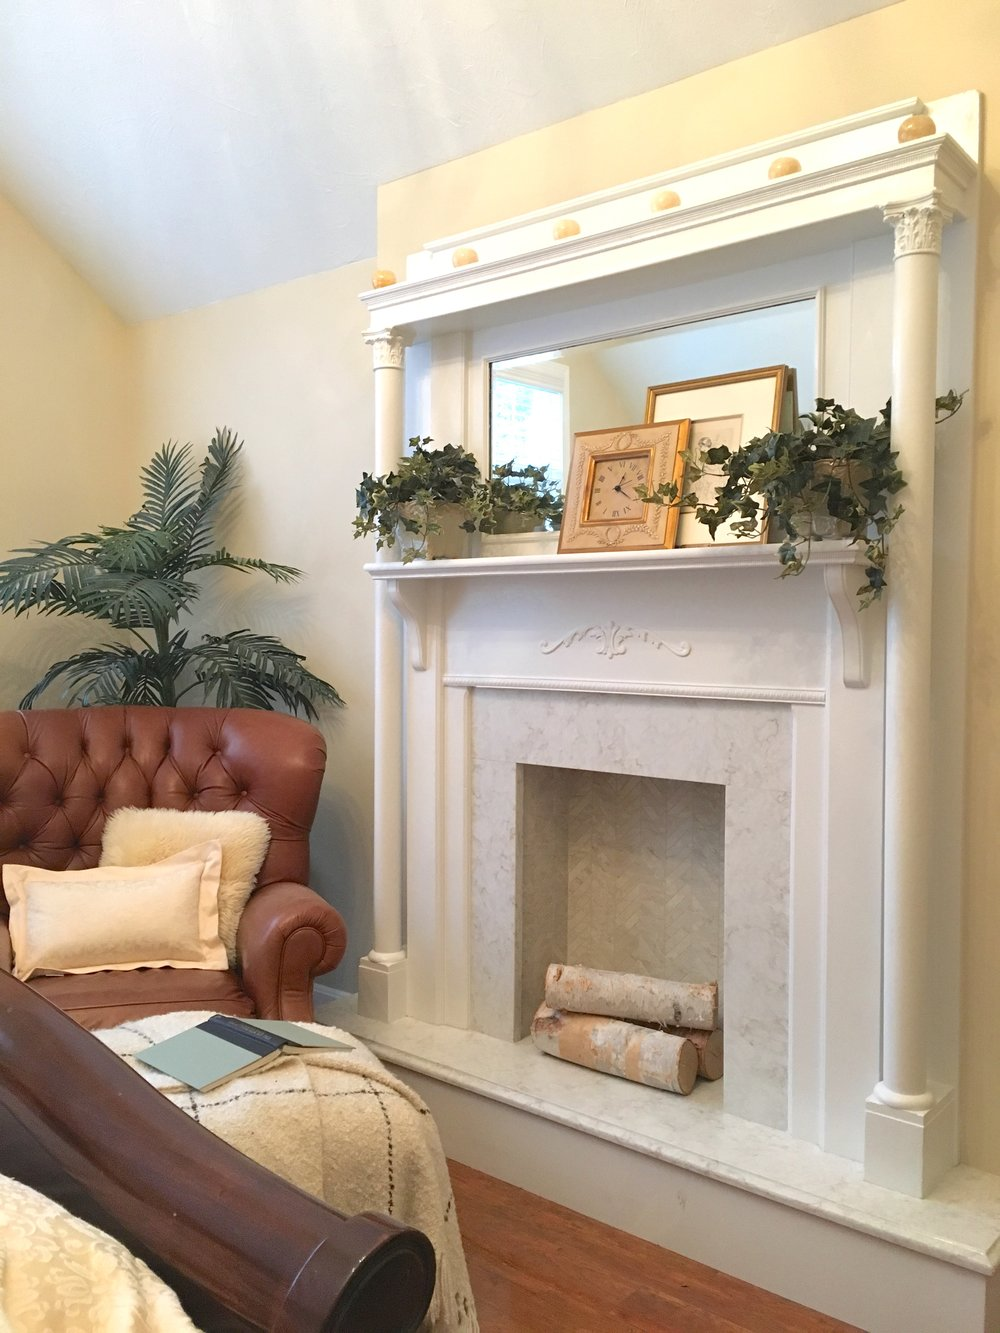 This faux fireplace was built-in to add charm to this master suite. The victorian oak mantelpiece was an item the homeowner had purchased at auction years ago and had never had a place to use. We built out the wall to create a faux chimney breast and raised hearth faced with quartz. The firebox was tiled with coordinating marble-look porcelain in a herringbone pattern.